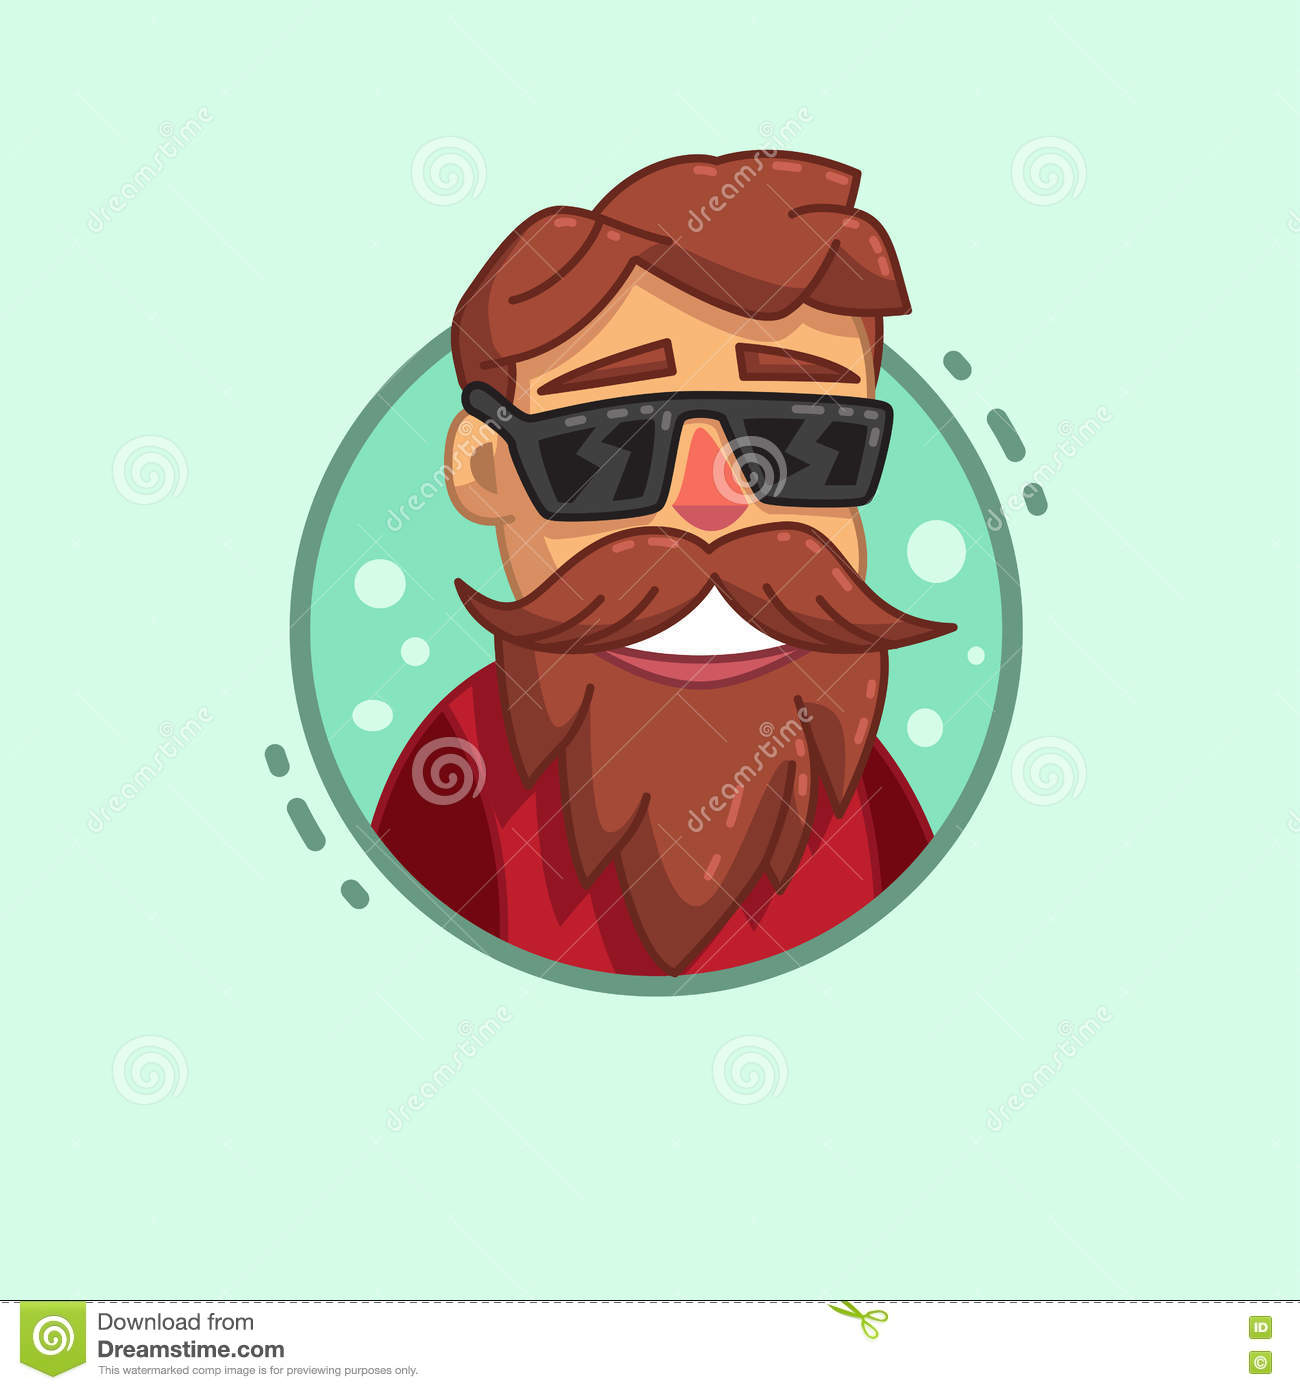 Hipster Beard Profile Icon stock vector. Illustration of ...